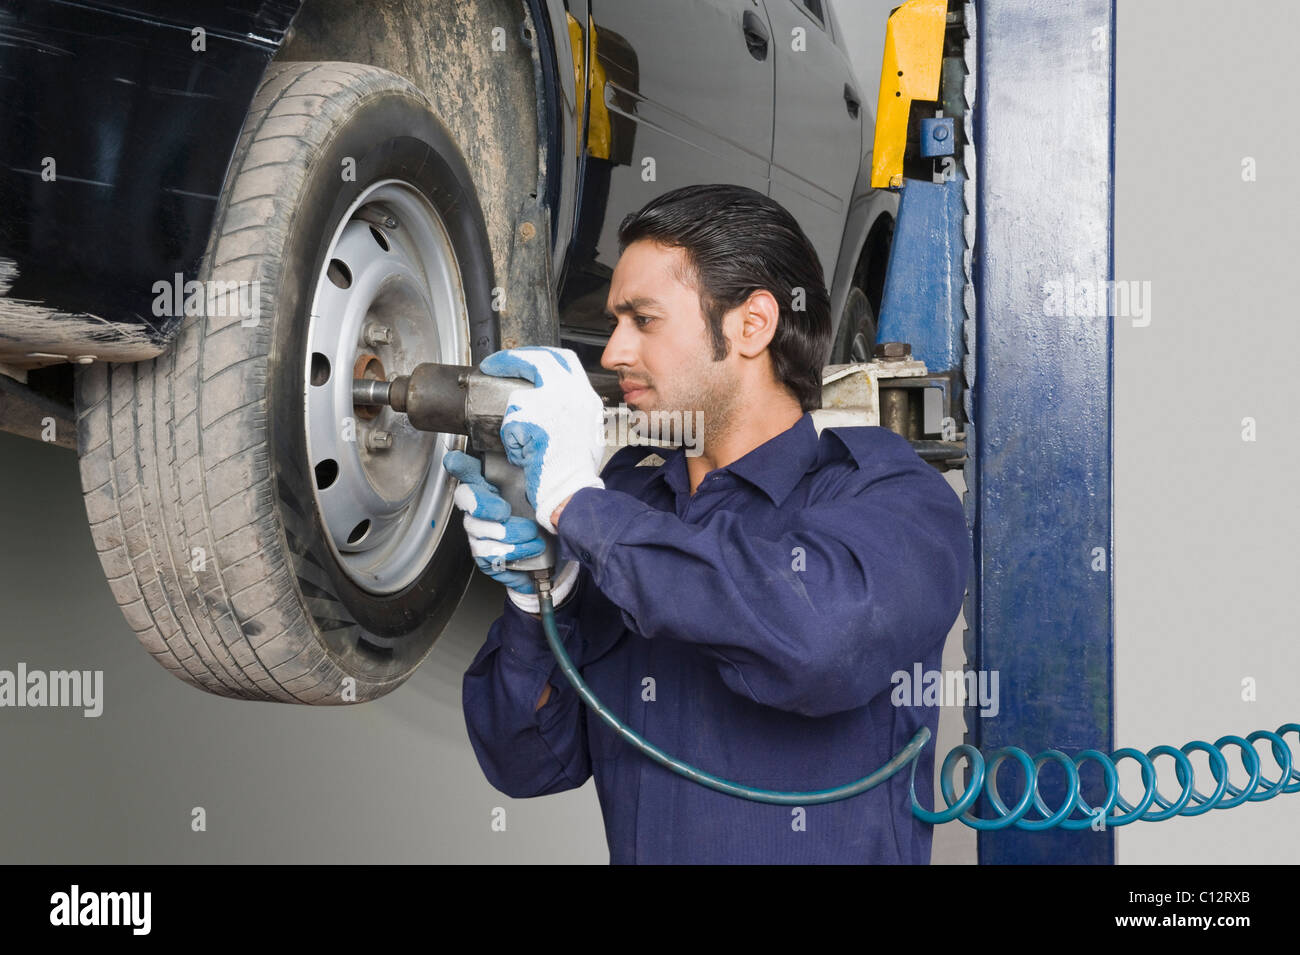 Auto mechanic fixing tire with a power tool - Stock Image